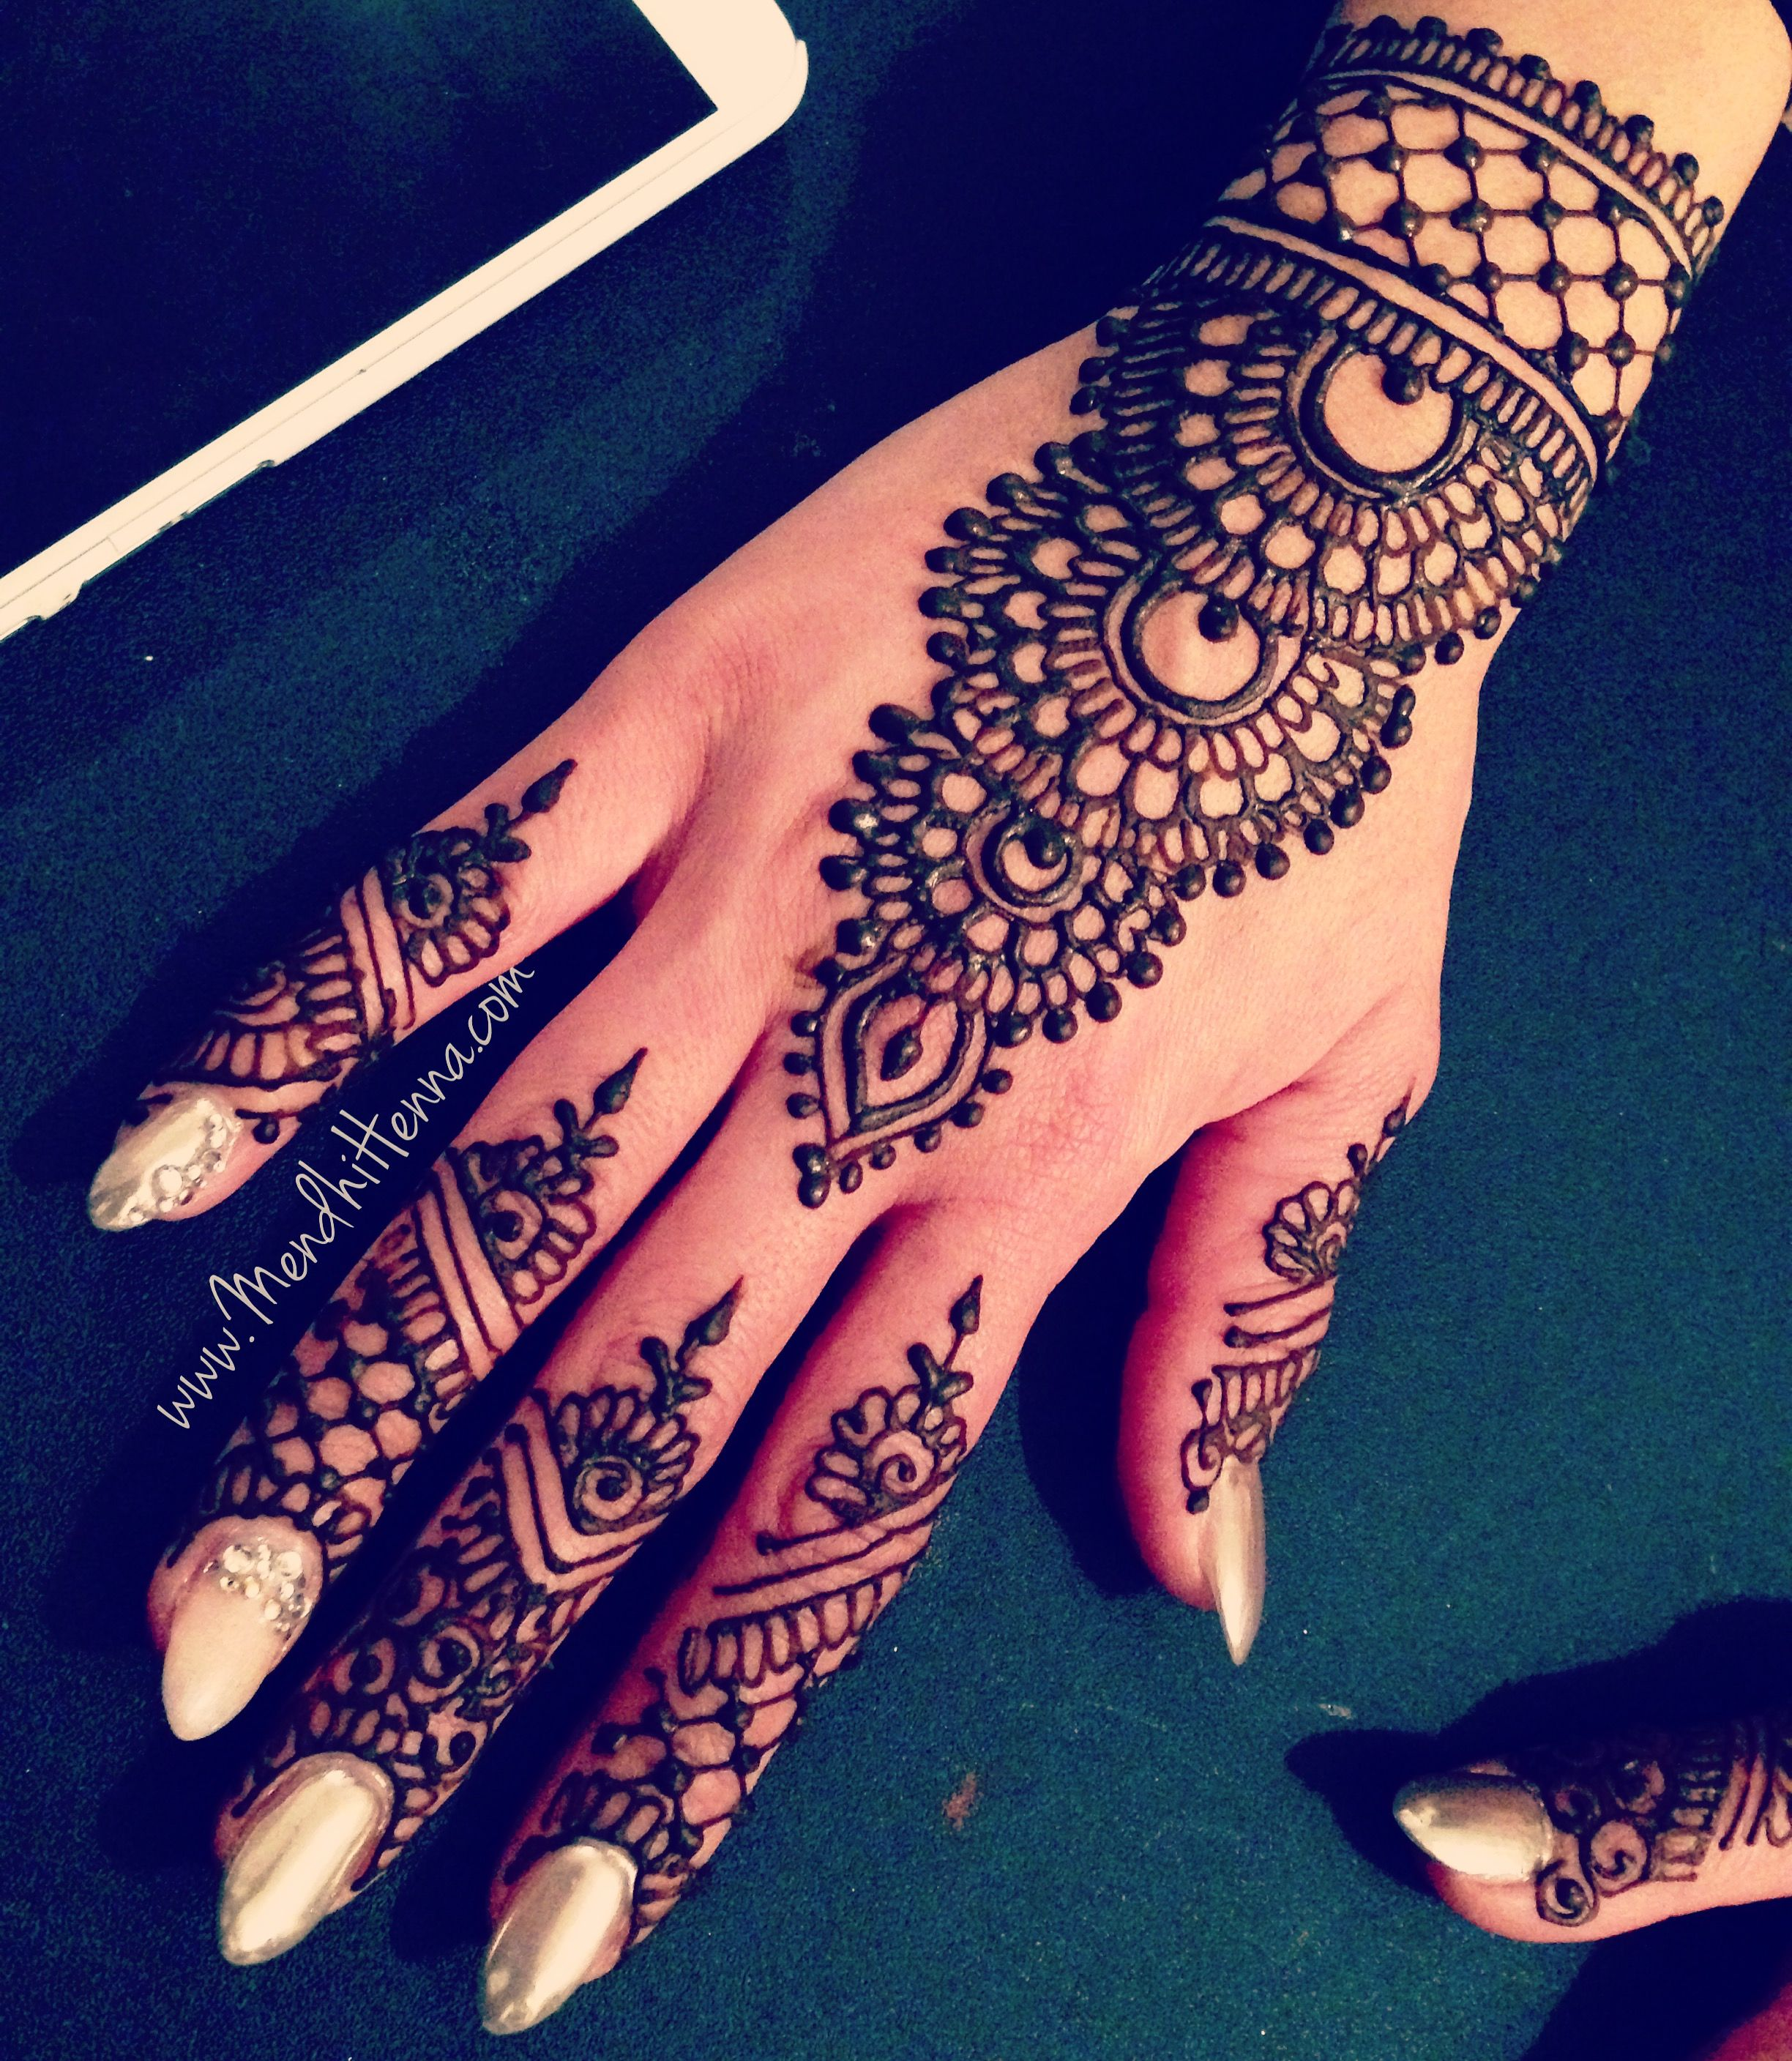 Excited For 2017 For Booking Info Please Send Me Your Location Date And Email Address Long Weekends Are Almost Ful Henna Designs Hand Henna Designs Henna,Affordable Graphic Design